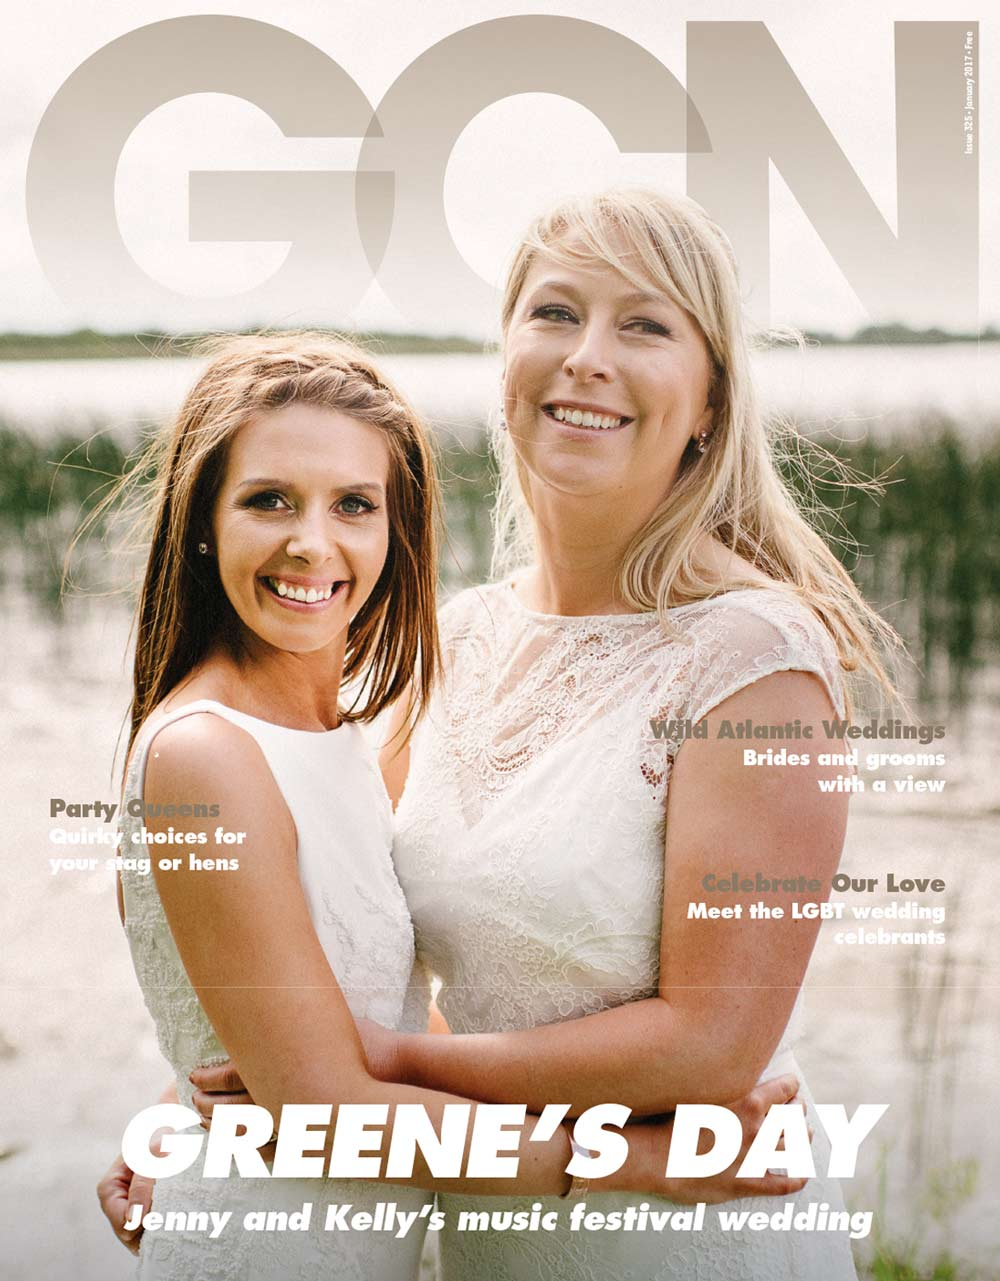 Two women (Jenny Greene and her wife Kelly Keogh) in white wedding dresses on the cover of GCN's wedding issue